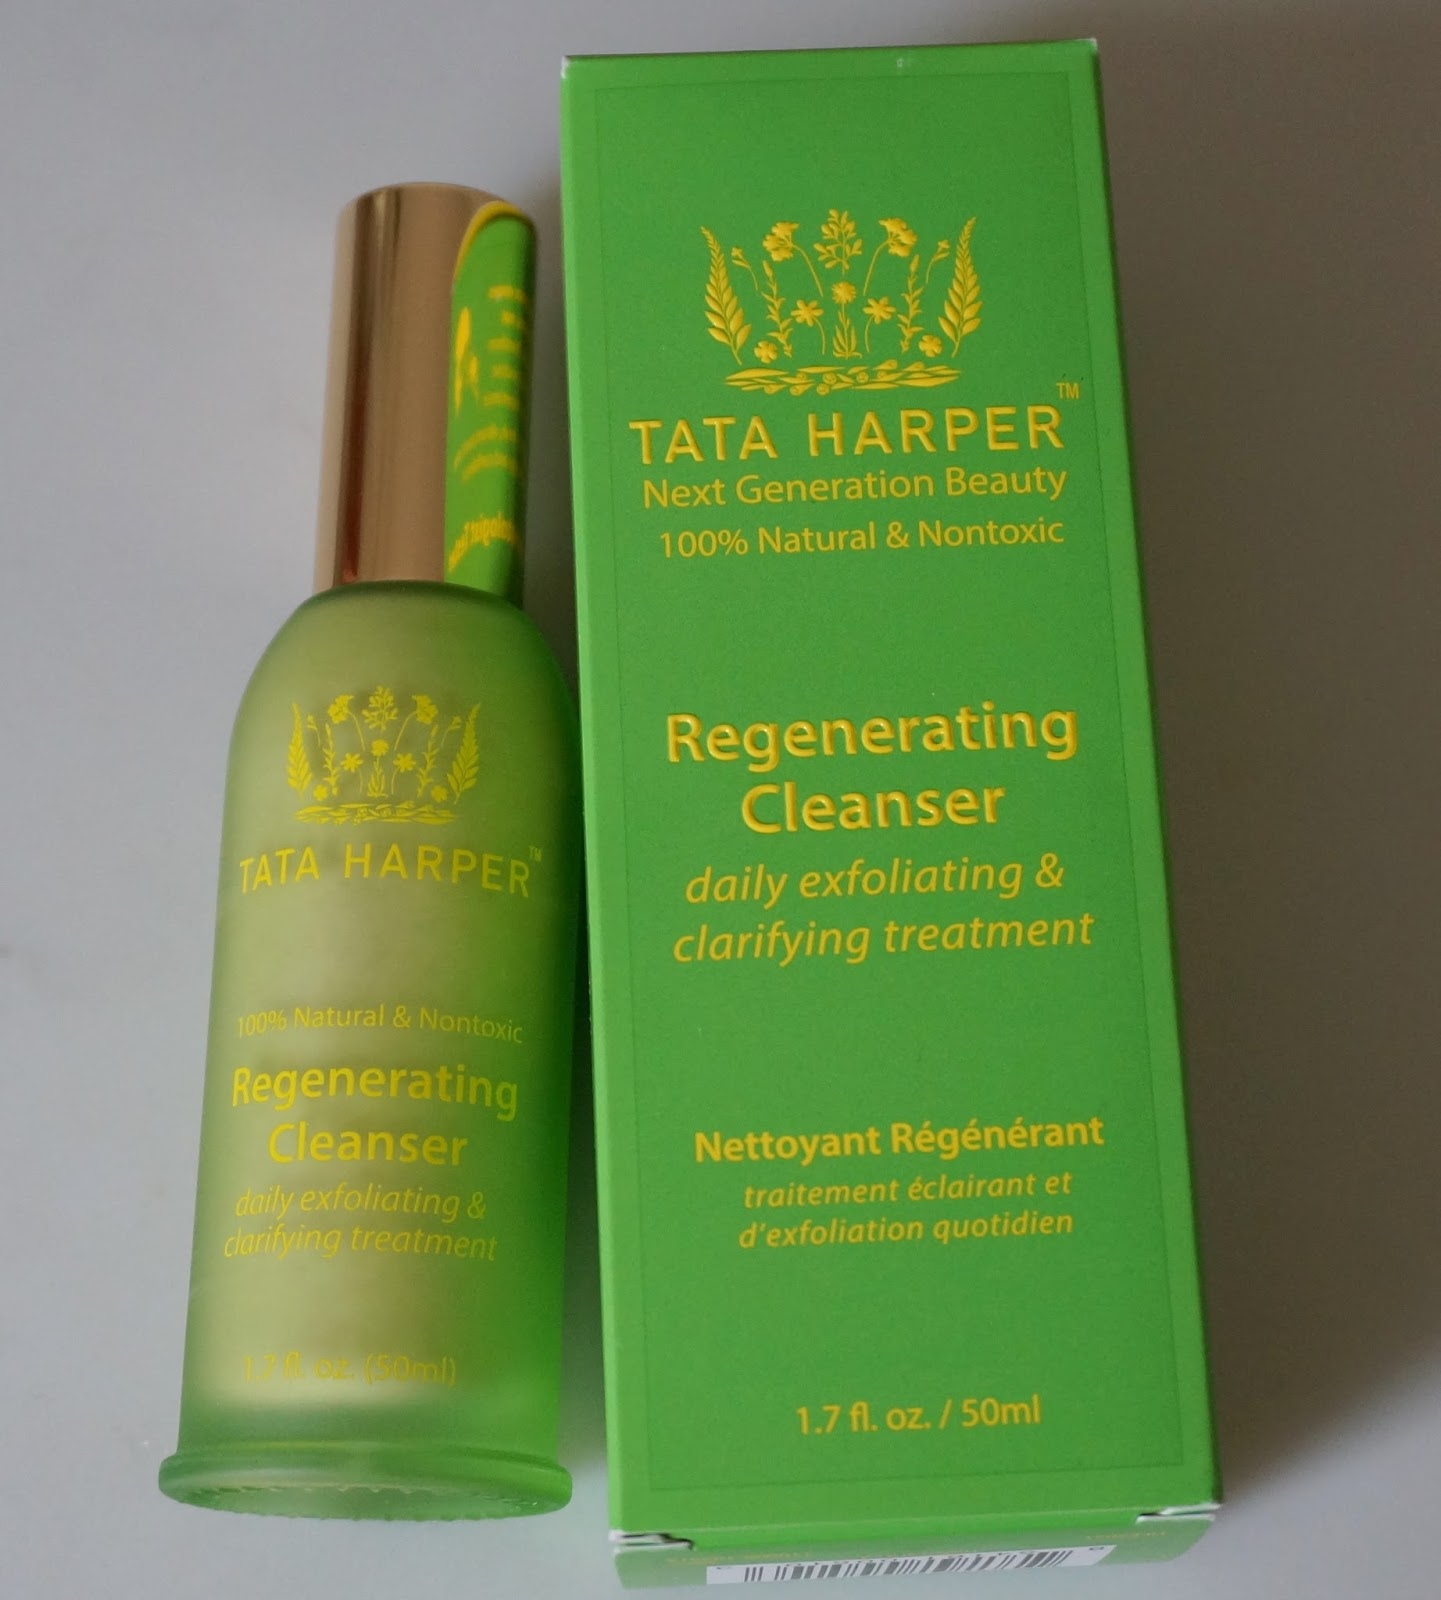 Tata Harper Regenerating Cleanser daily exfoliating and clarifying